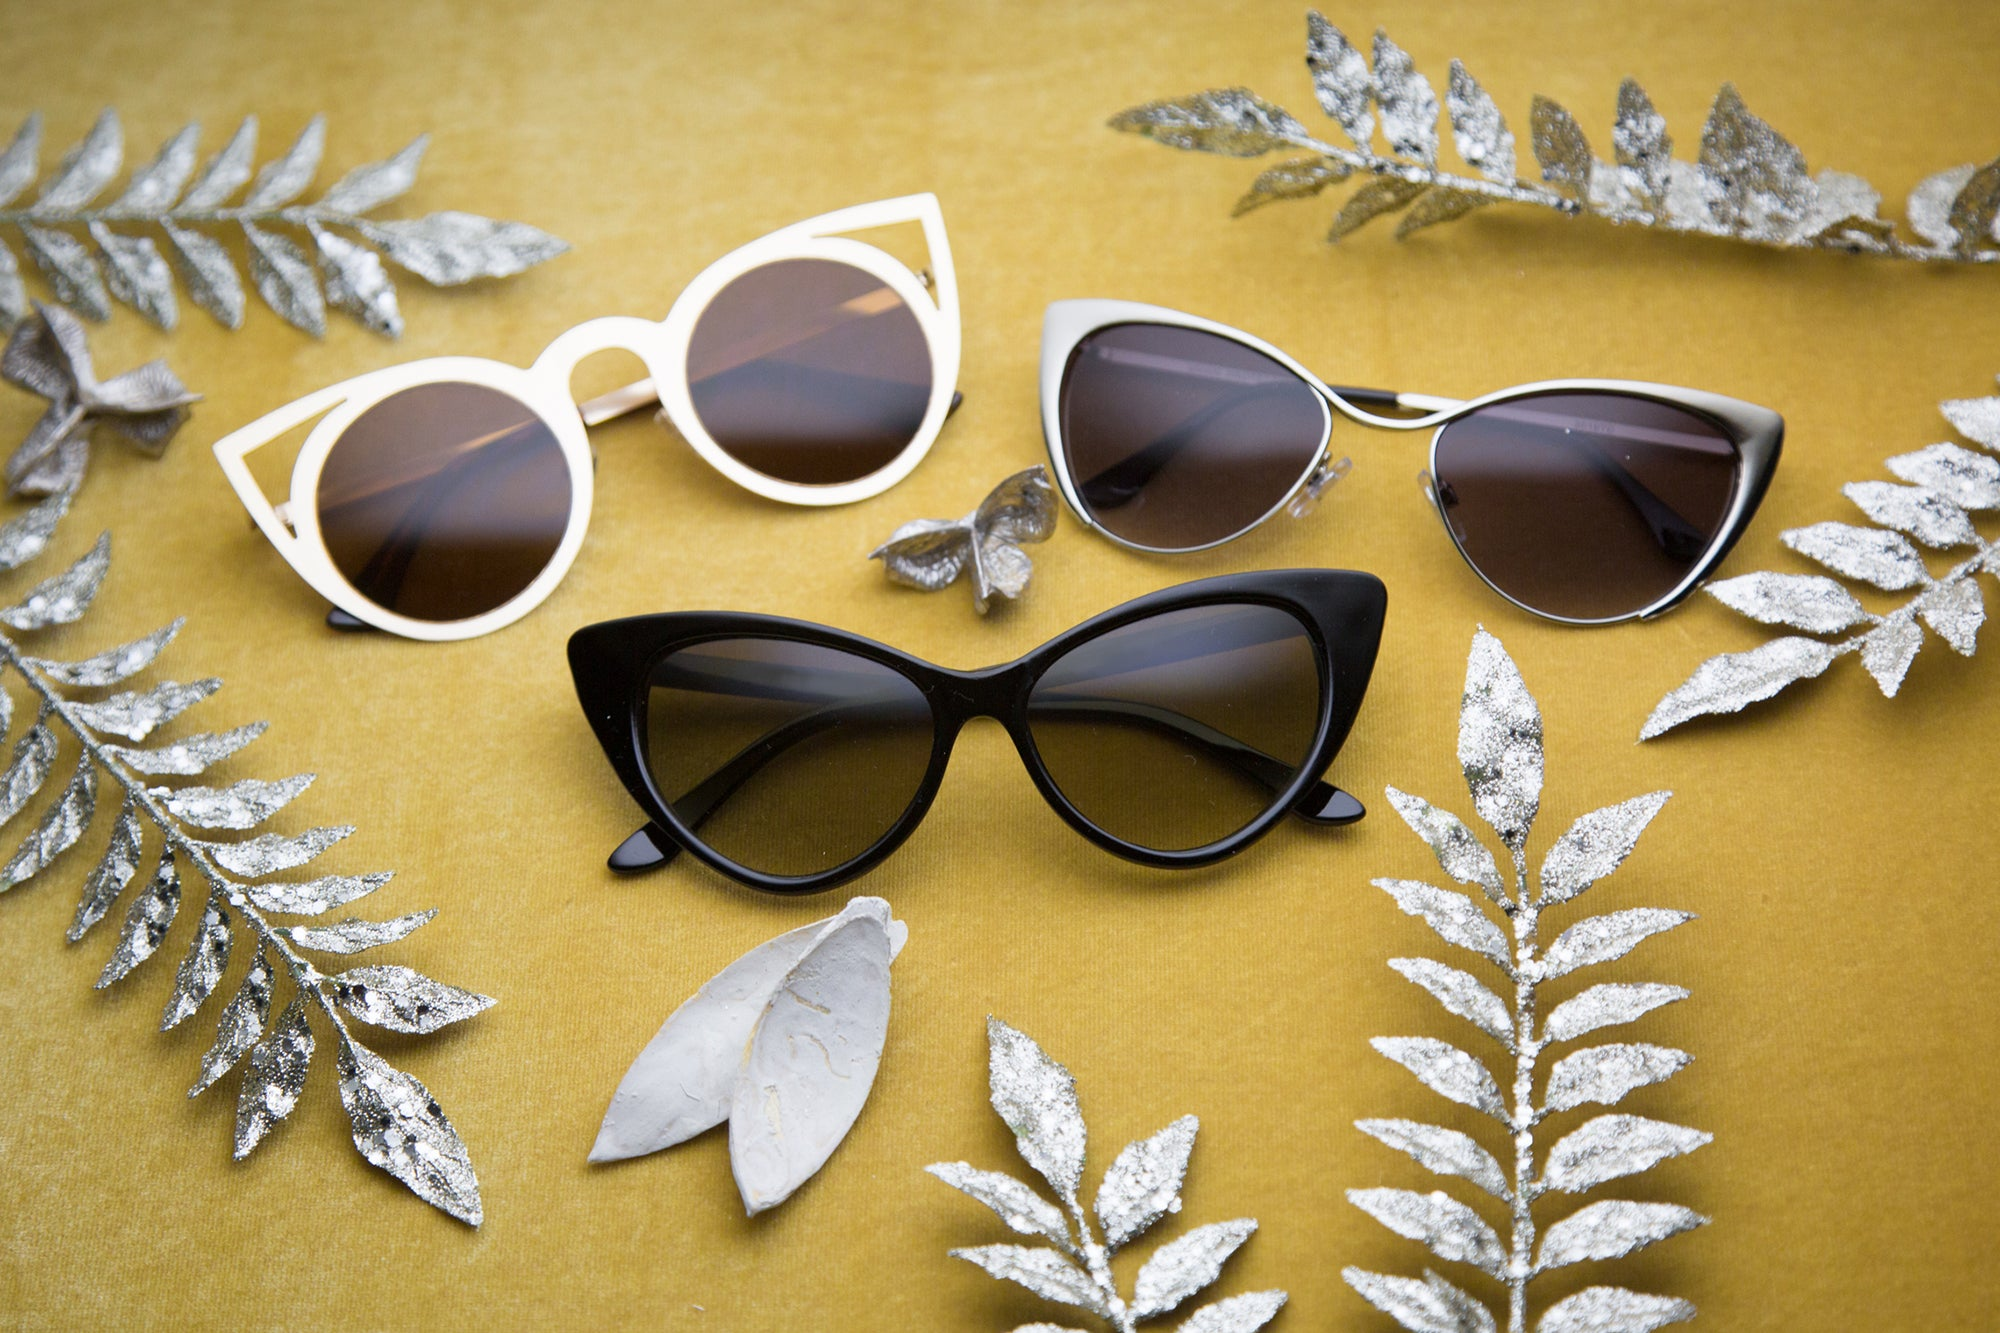 Sunglass.LA Womens Vintage Retro Cateyes Sunglasses Trend